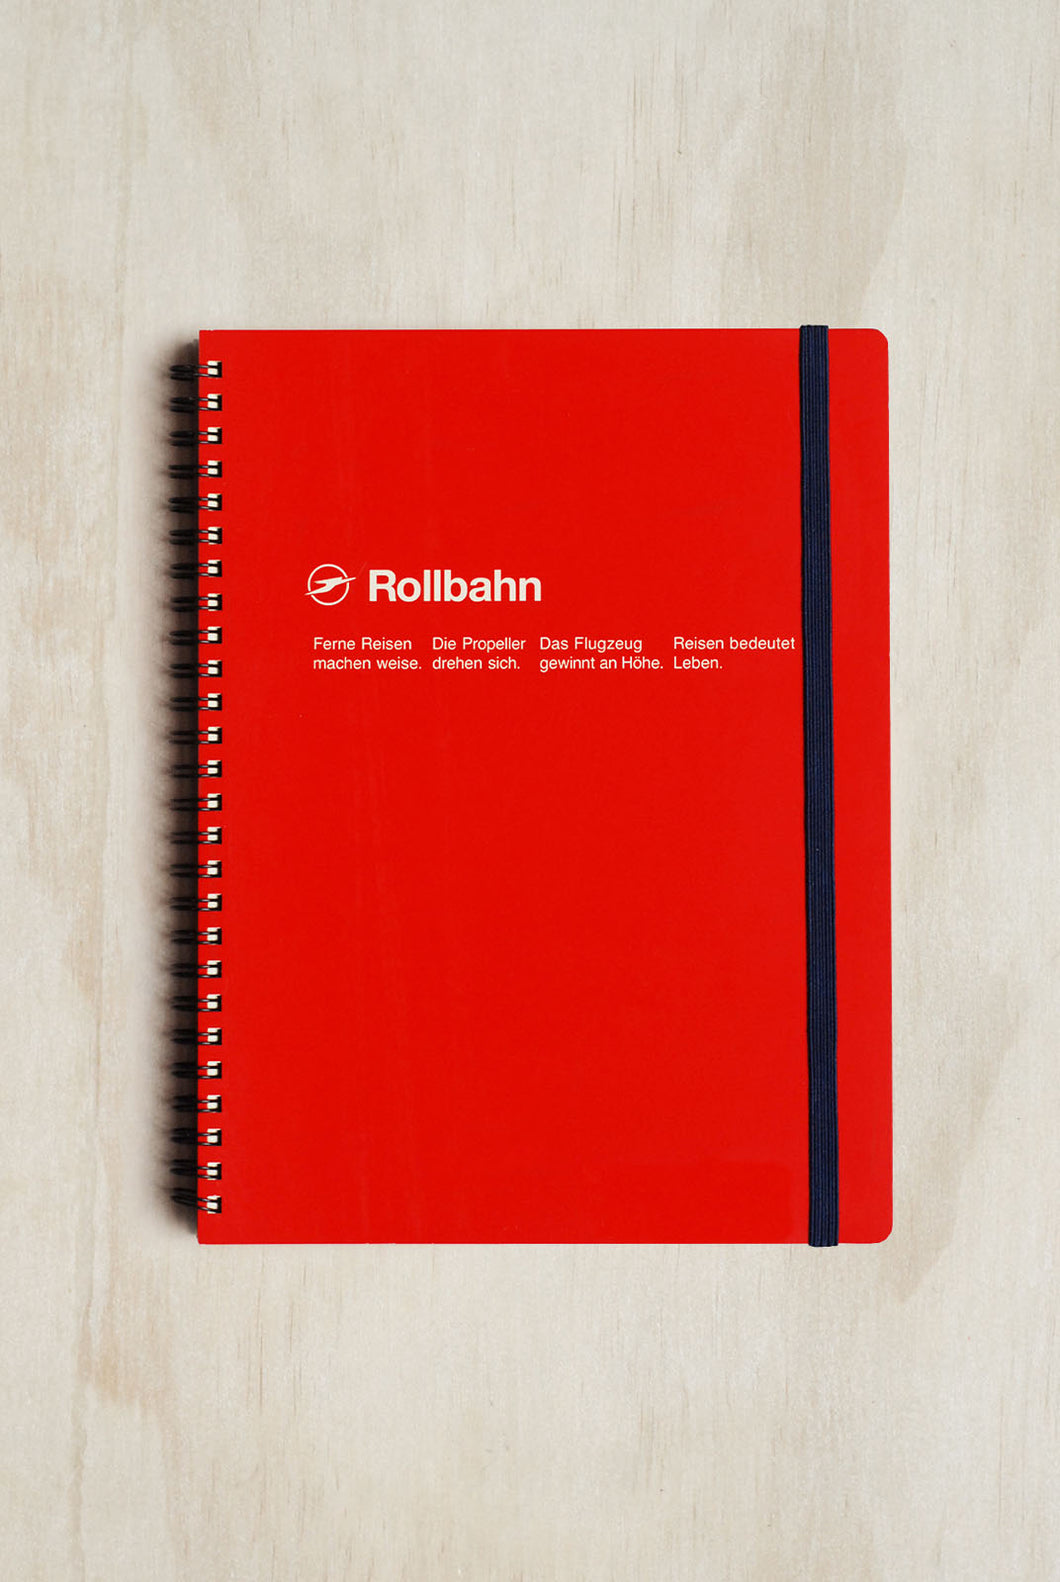 Delfonics - Rollbahn Notebook - Grid - Extra Large (21x26cm) - Red